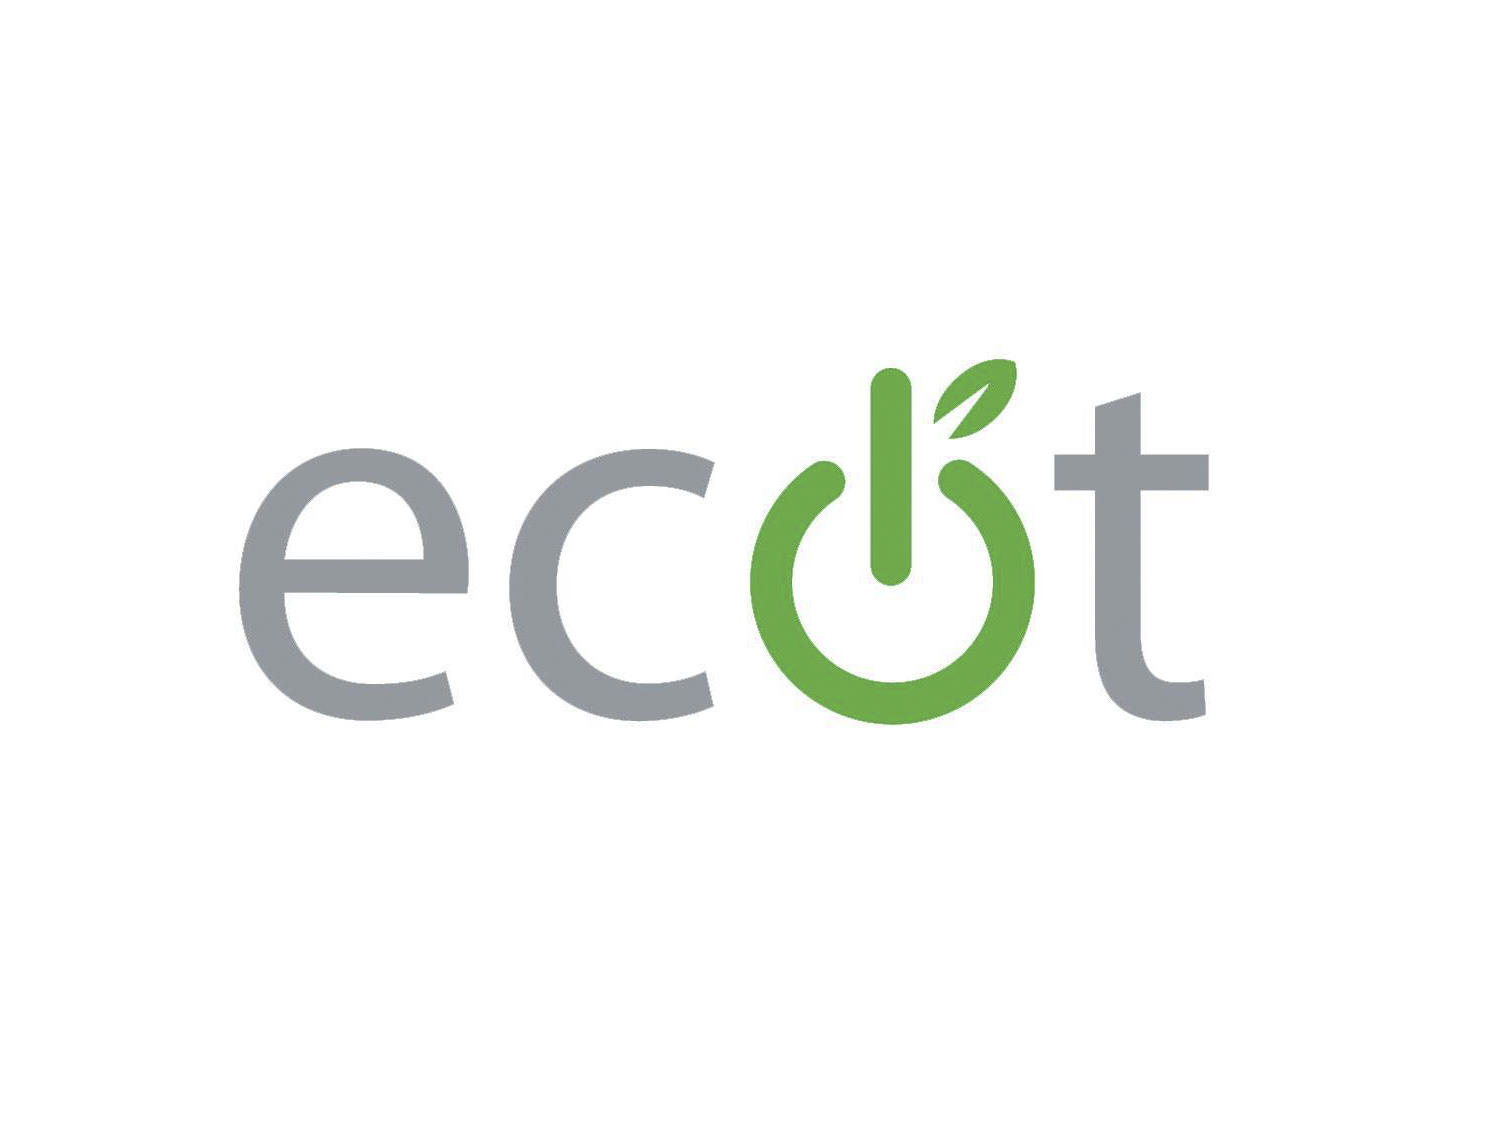 20 students in Fremont district affected by ECOT closure